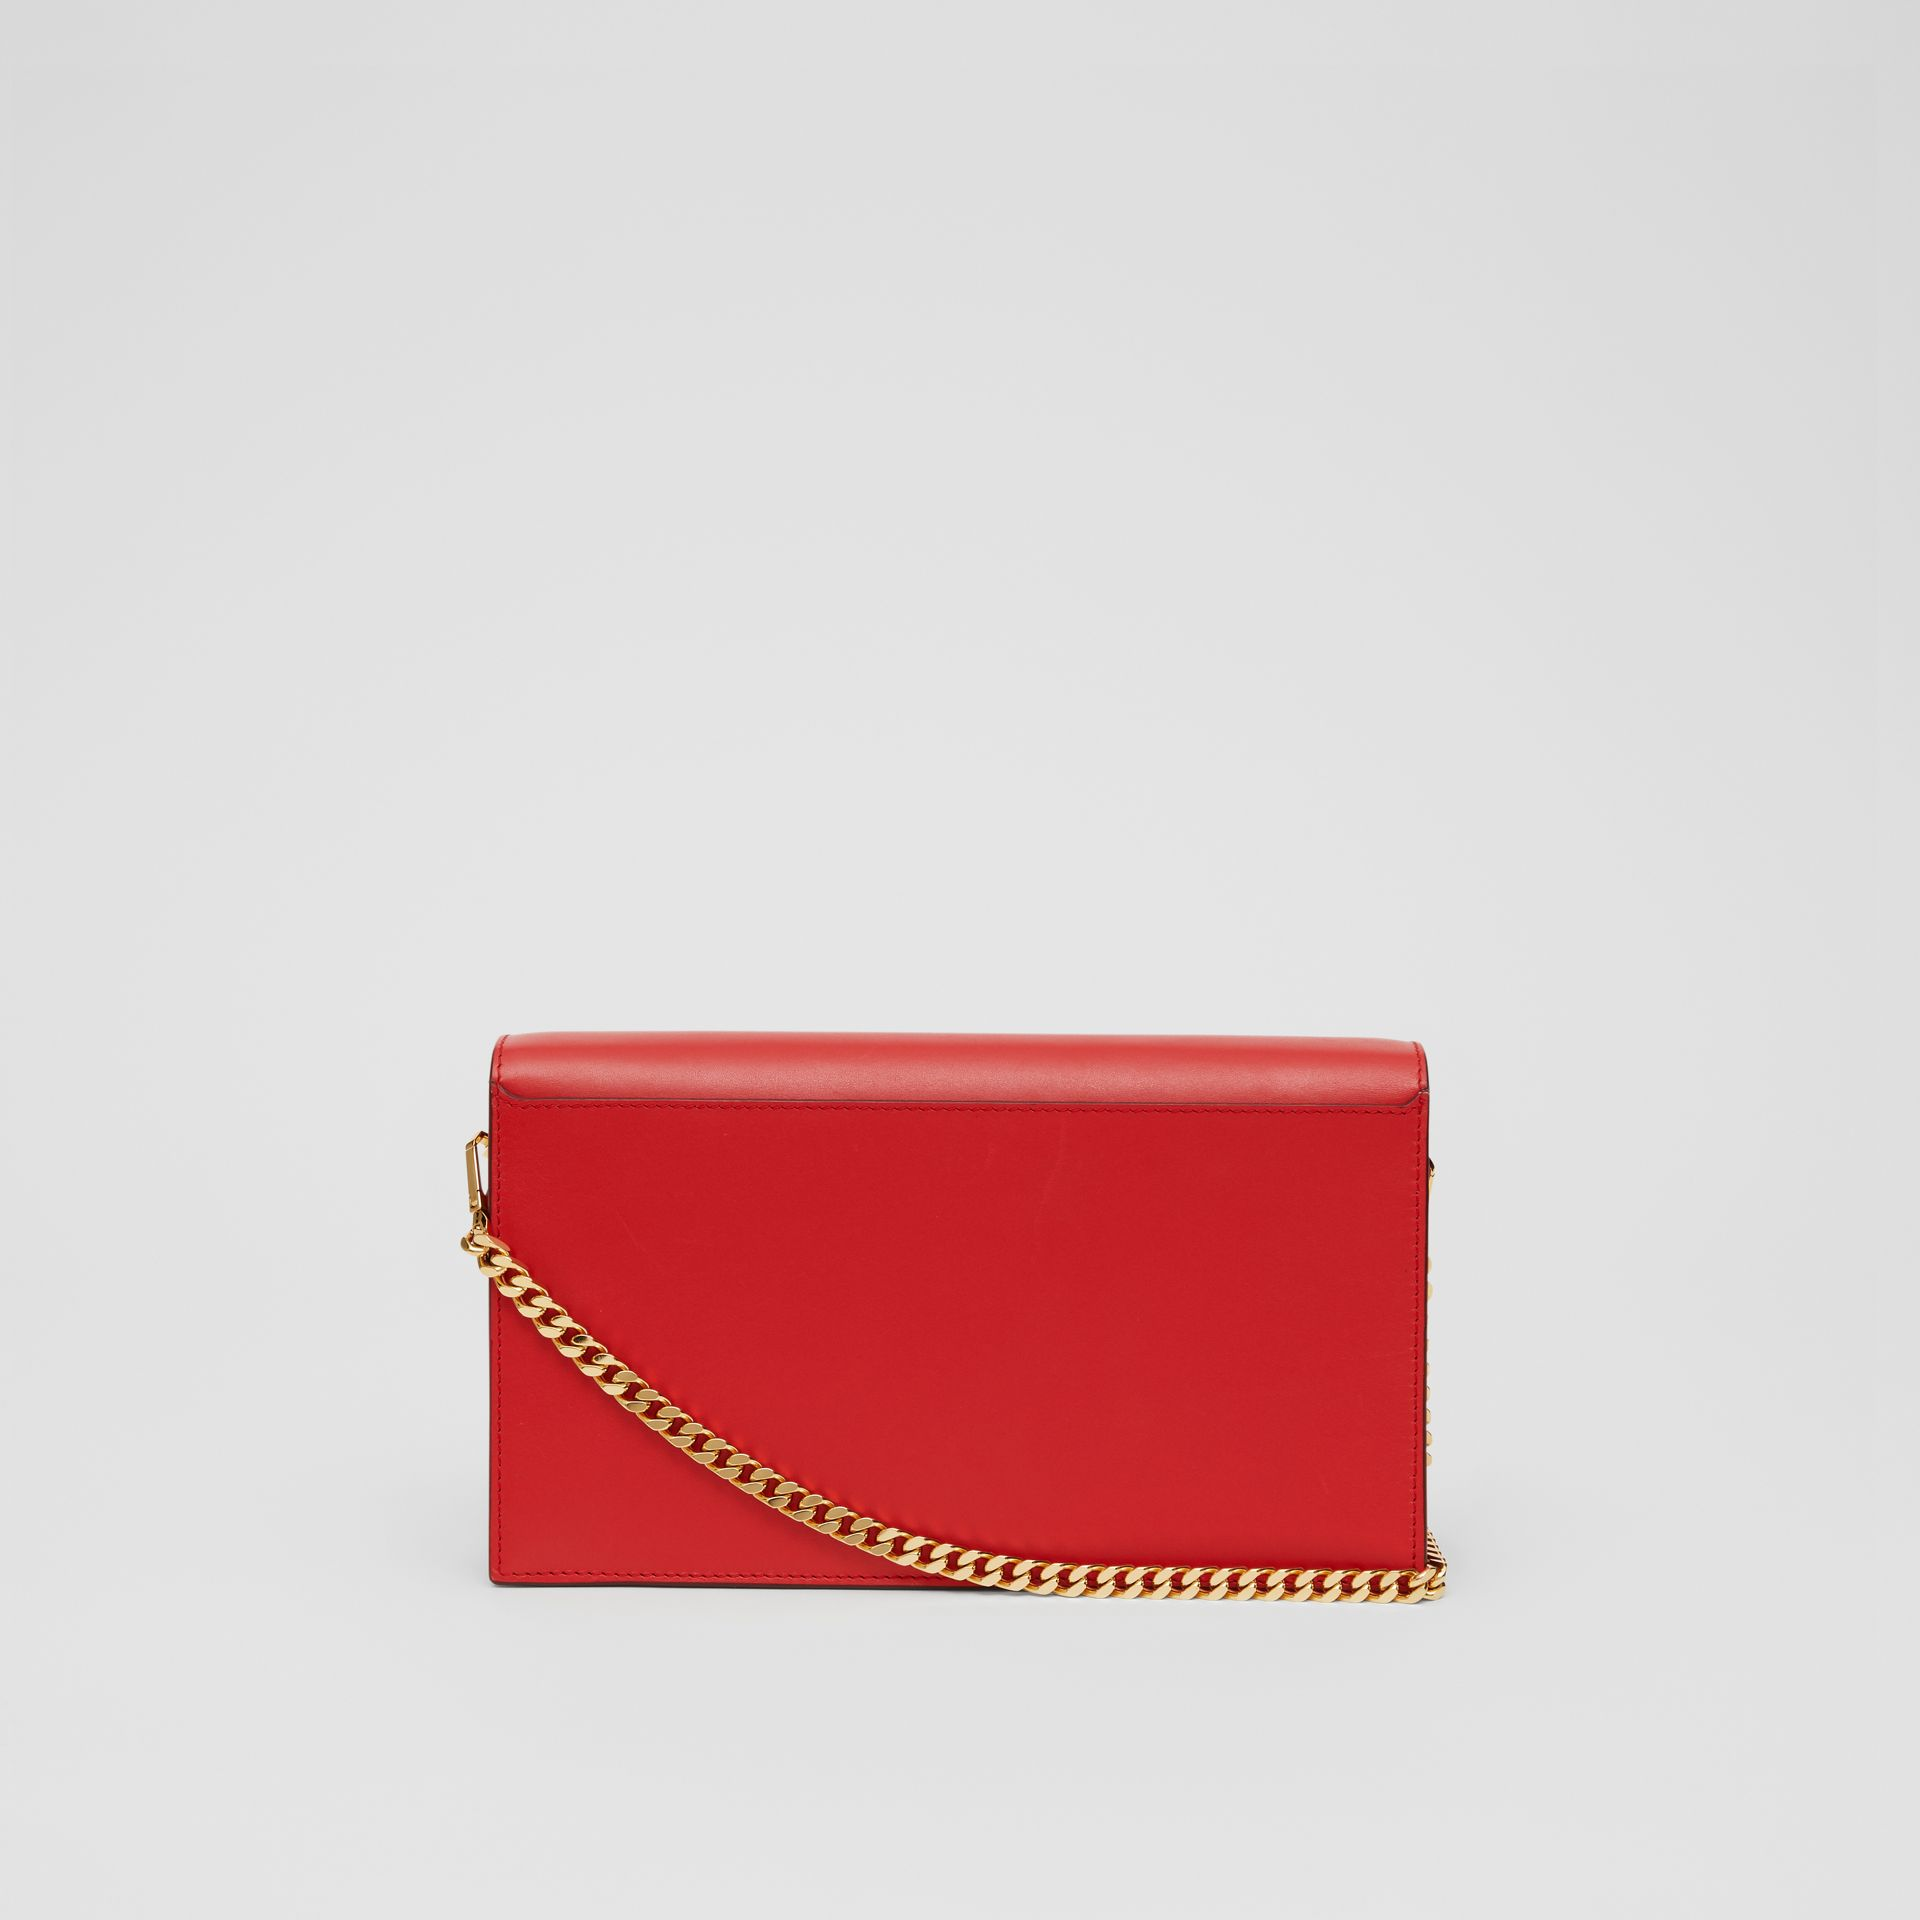 Small Leather TB Envelope Clutch in Bright Military Red - Women | Burberry - gallery image 7